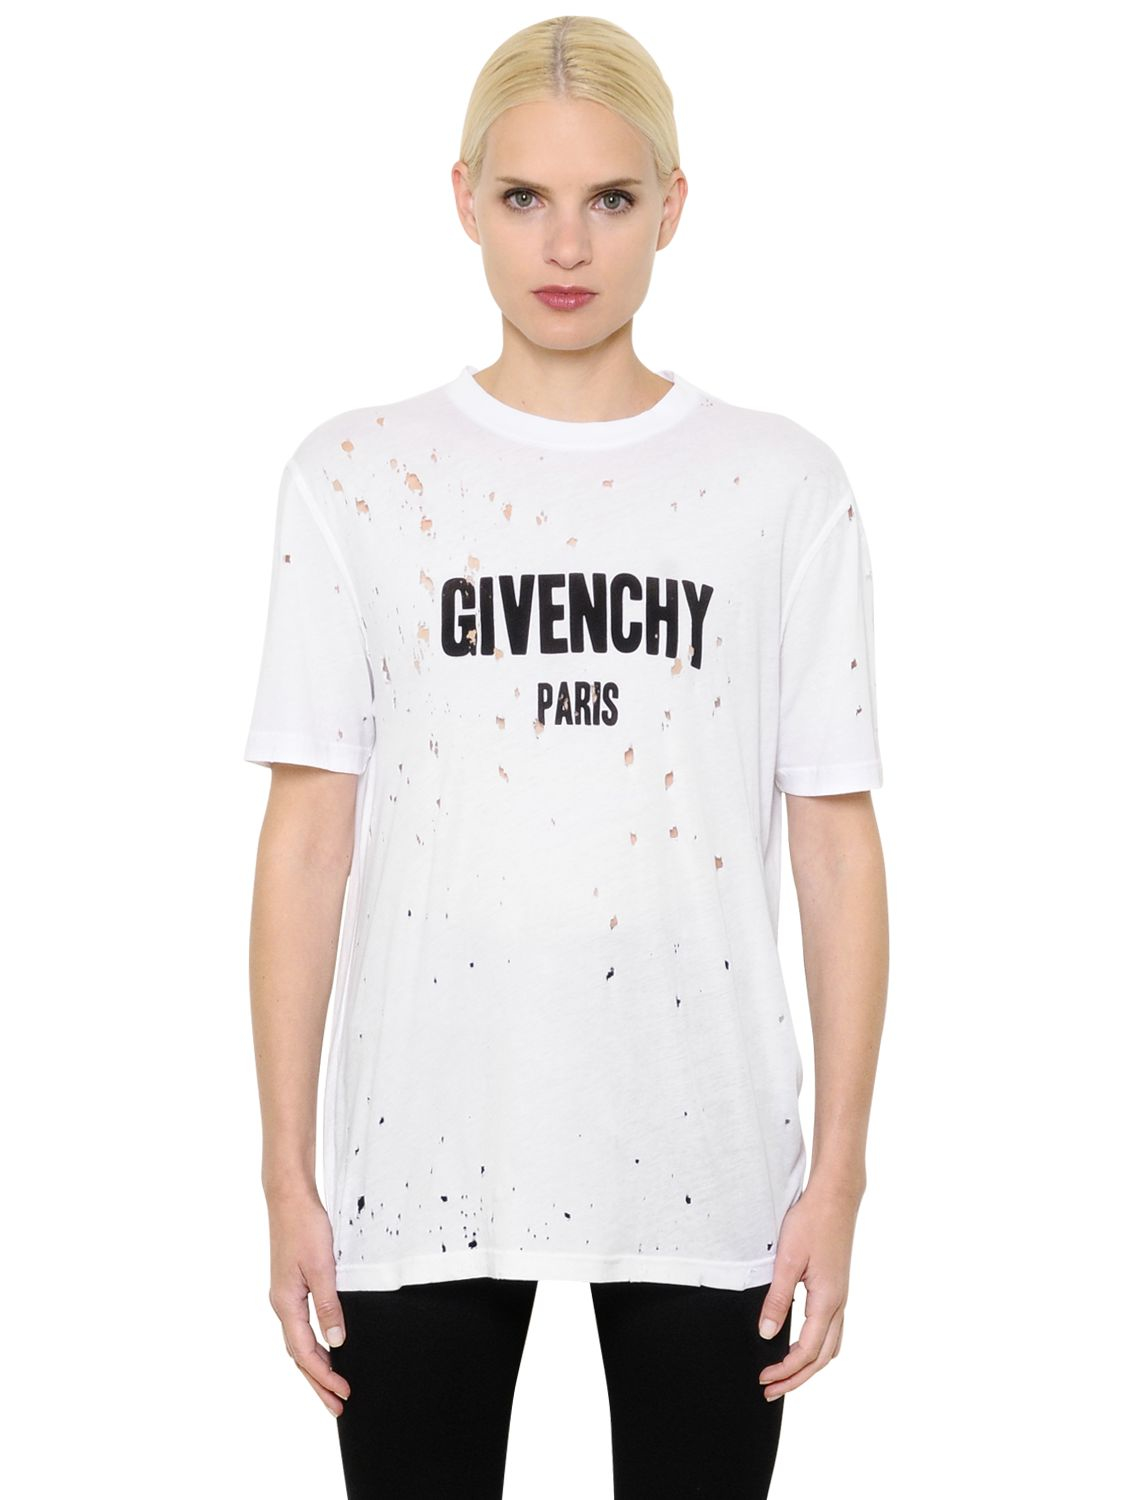 Lyst - Givenchy Logo Printed Destroyed Jersey T-shirt in White 180edb93d6